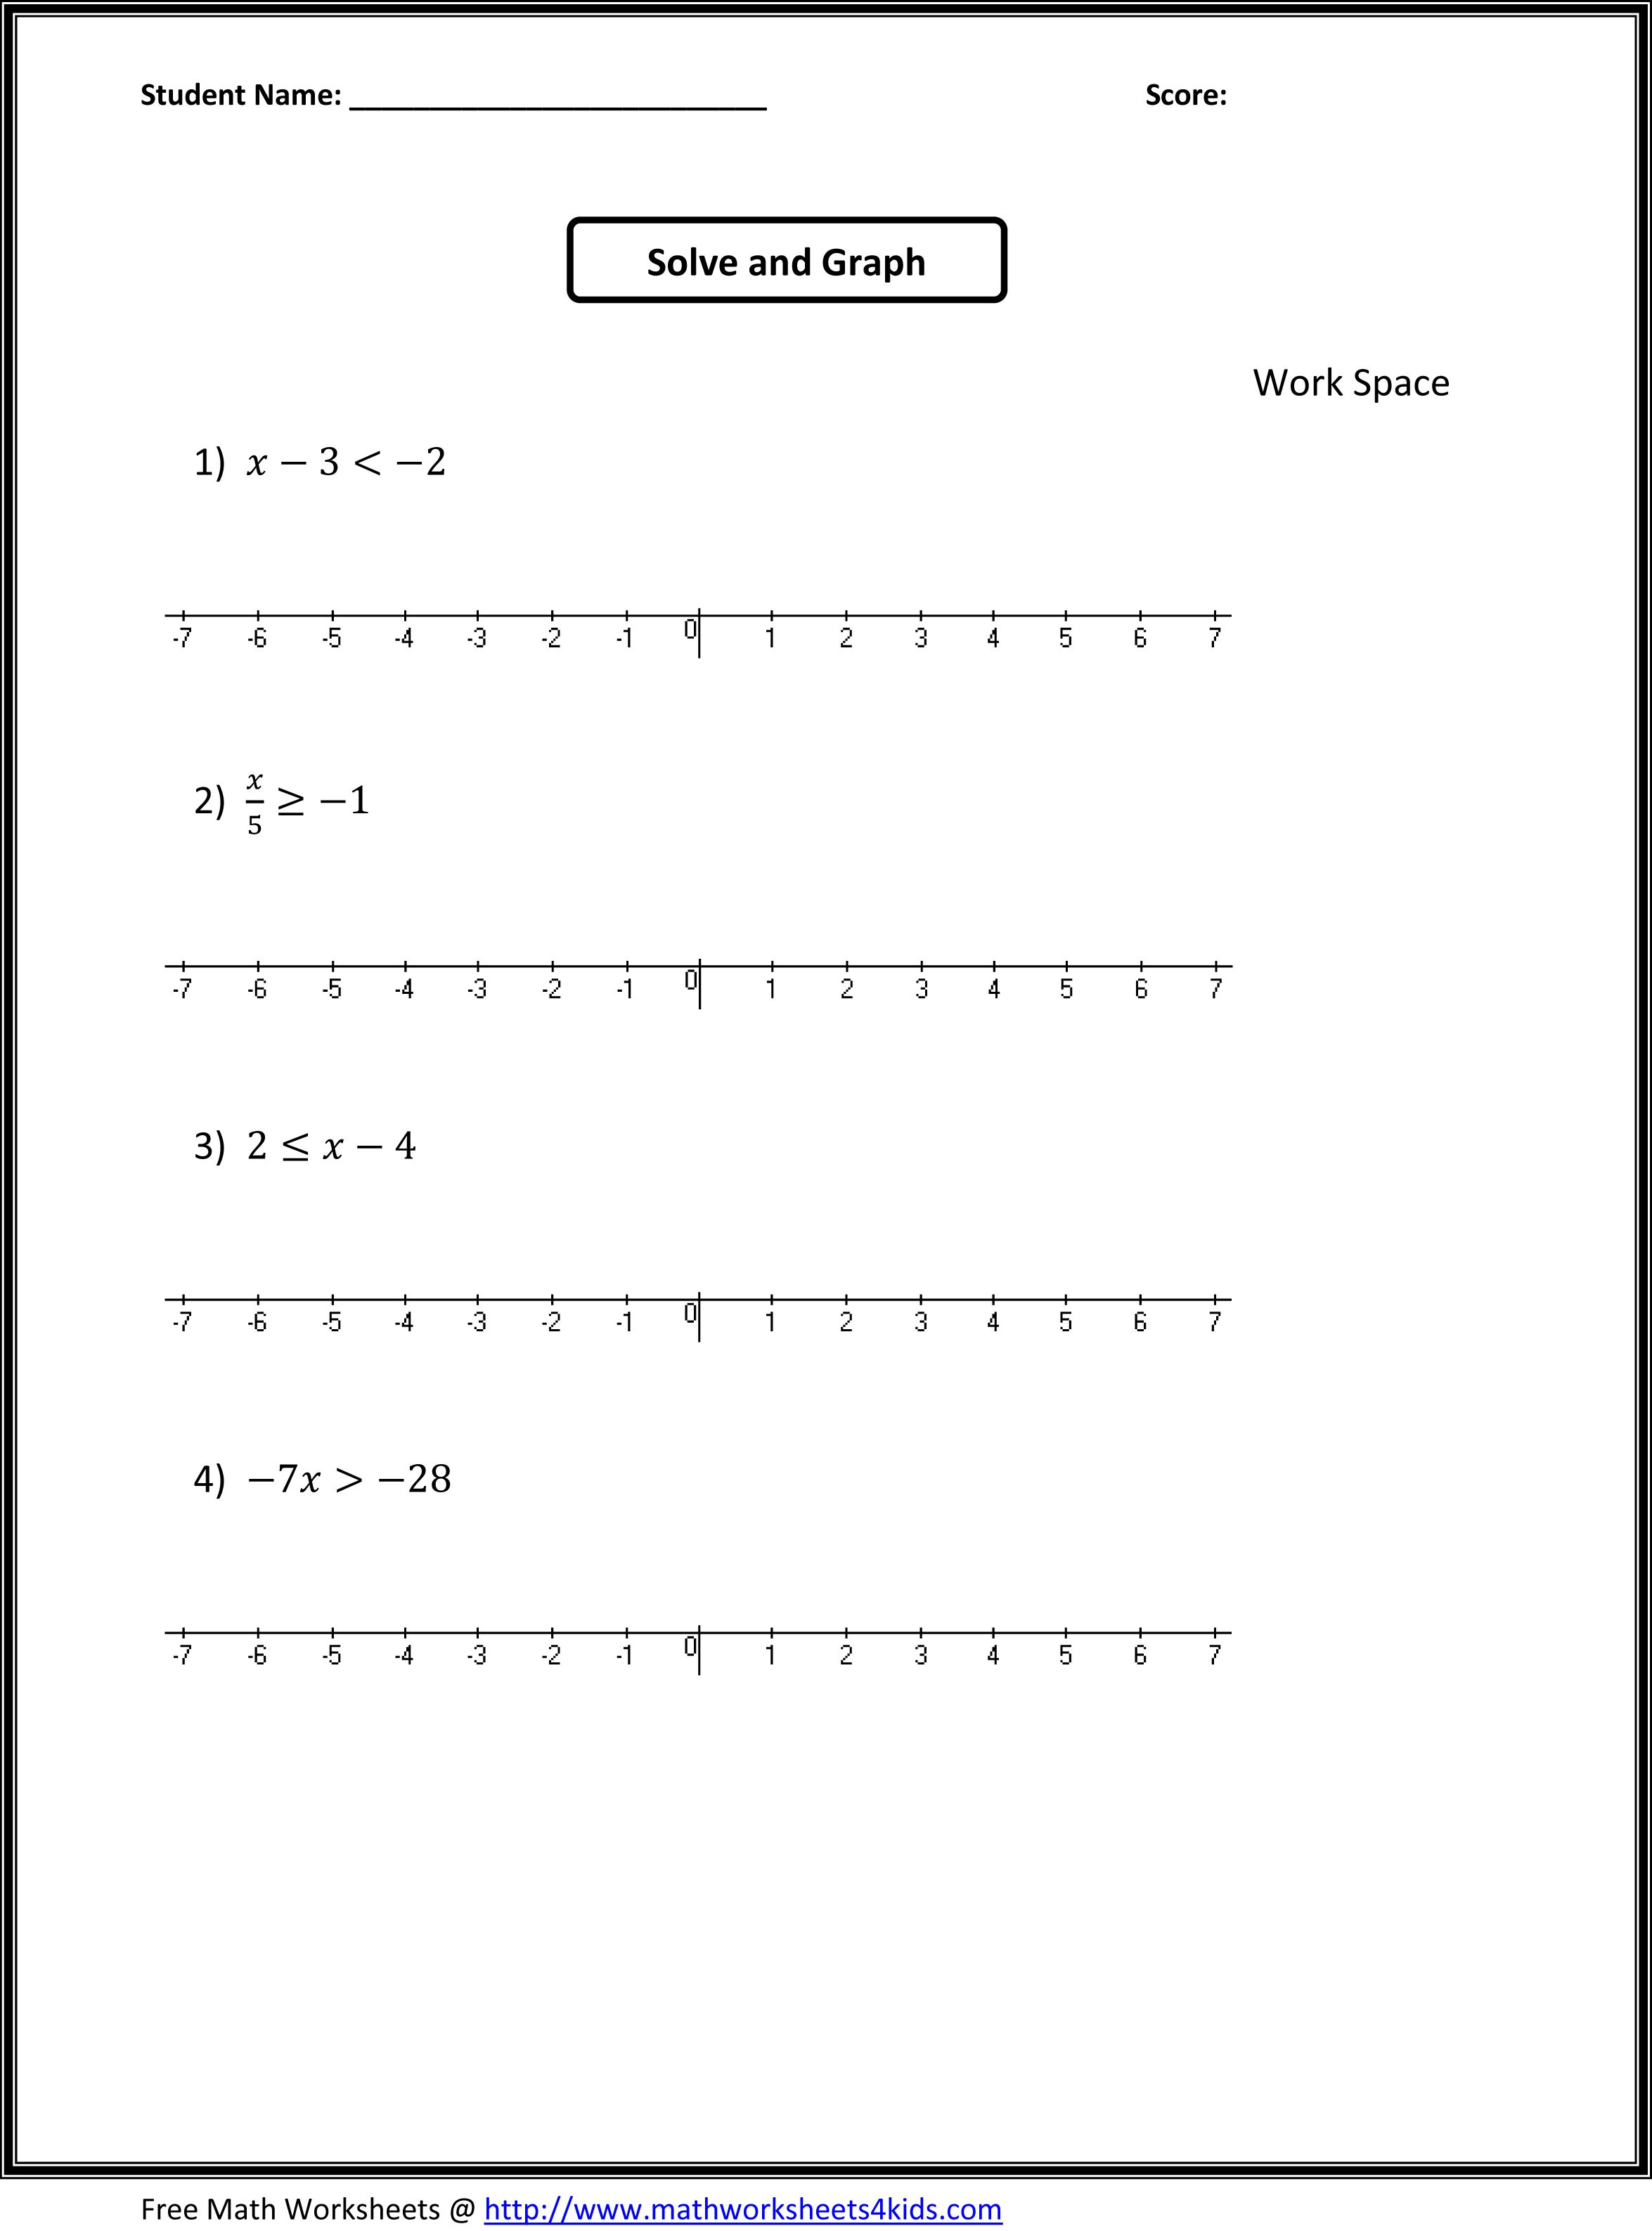 Printables Math 7th Grade Worksheets 7th grade math worksheets value absolute algebra worksheets